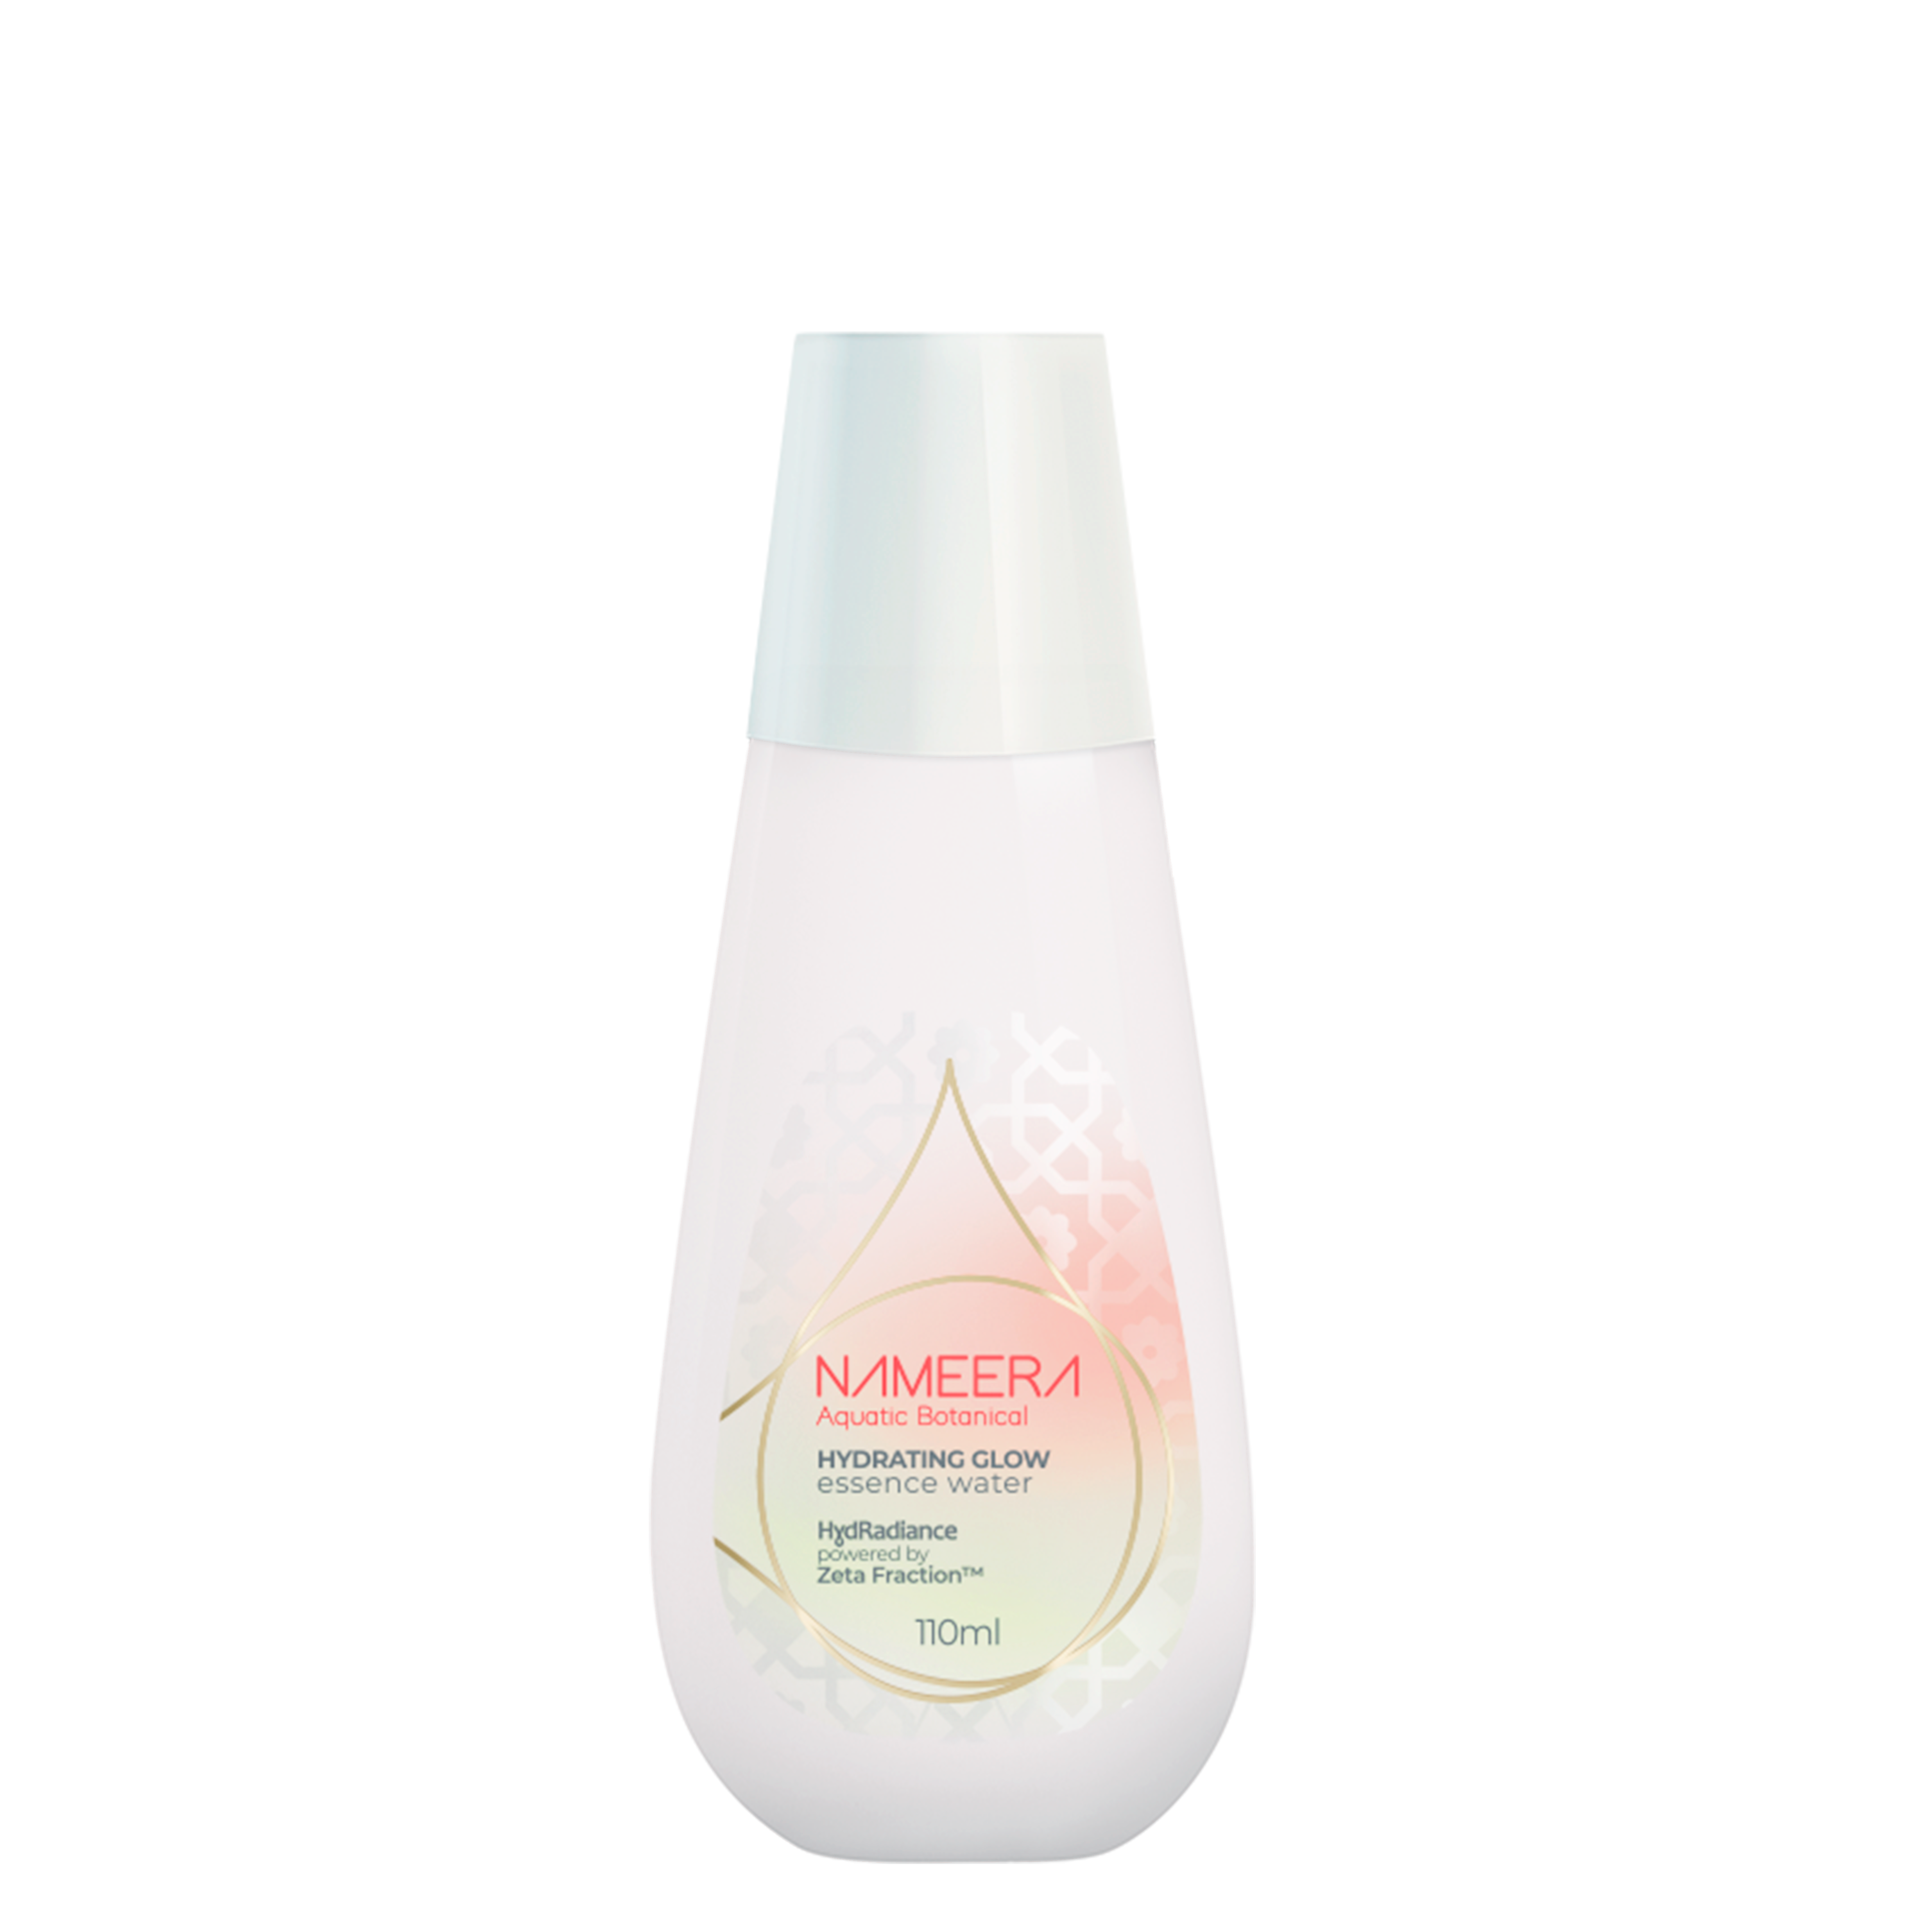 Hydrating Glow Essence Water